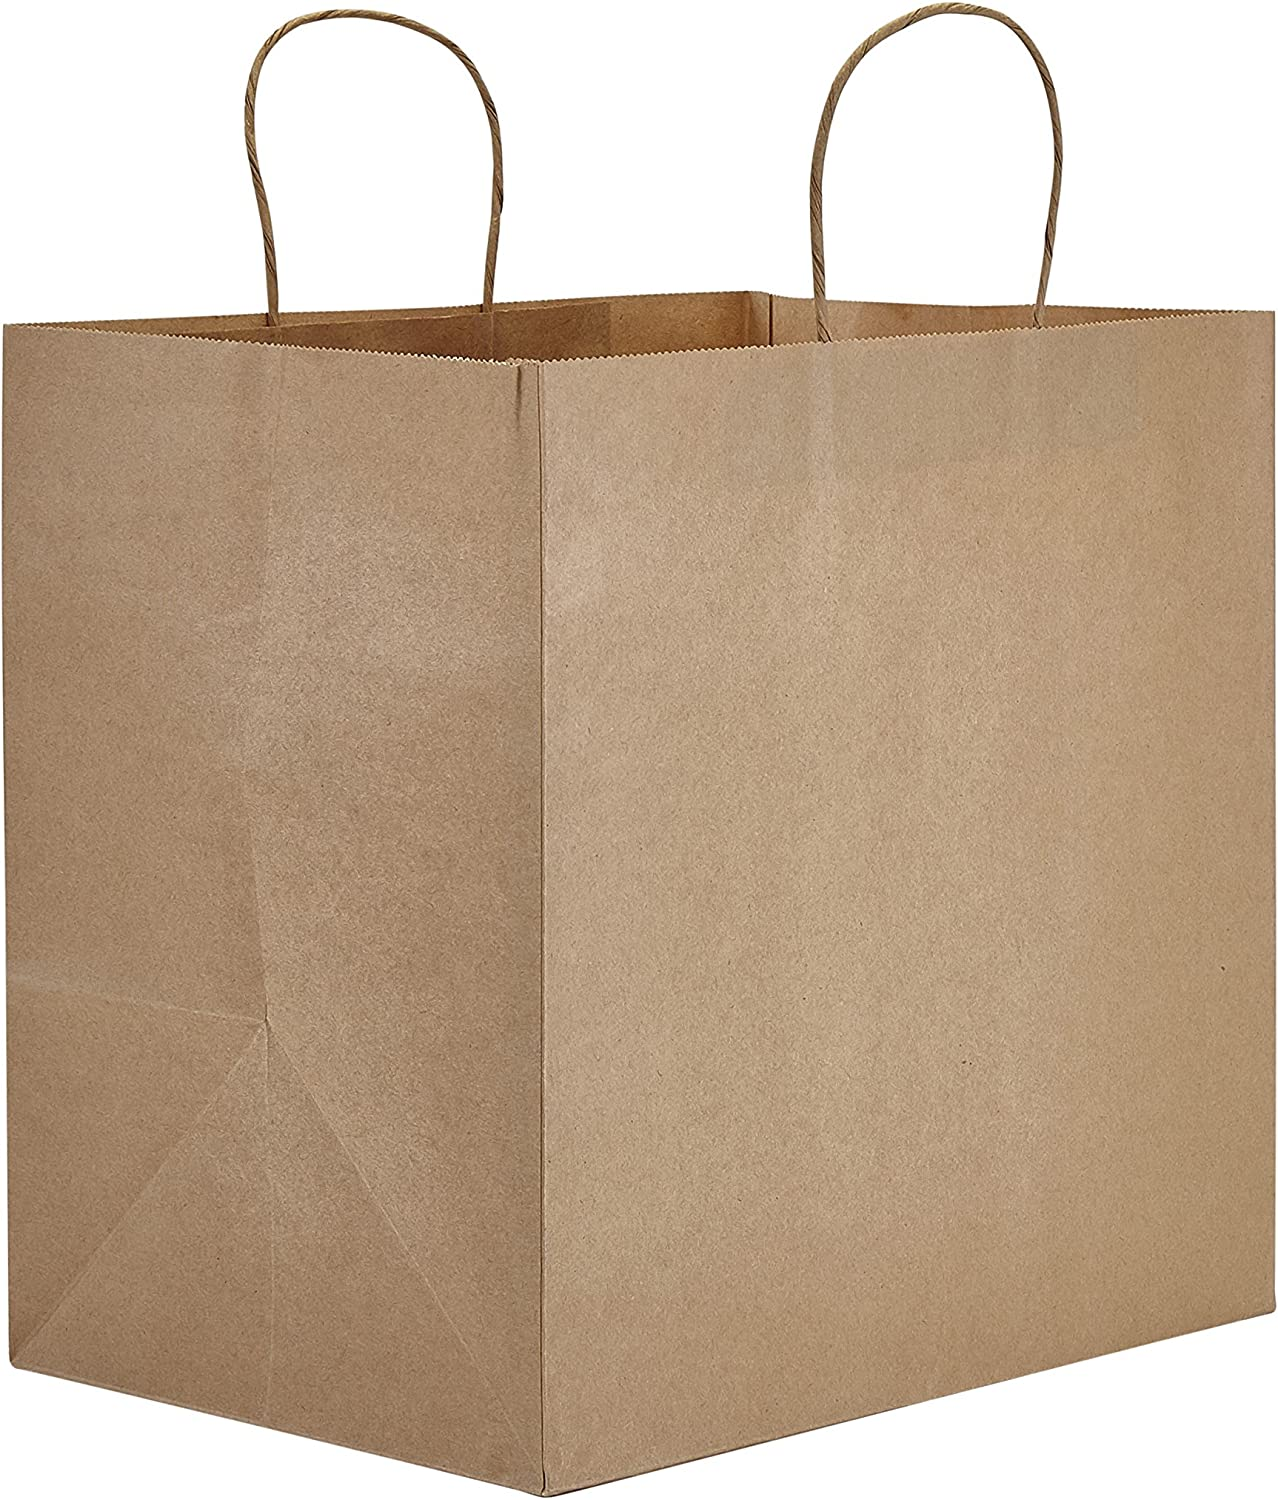 """PTP BAGS Natural 13"""" x 9.75"""" x 13"""" Tote Bags [Pack of 250] Recyclable Kraft Paper Gift, Food Service Bags"""